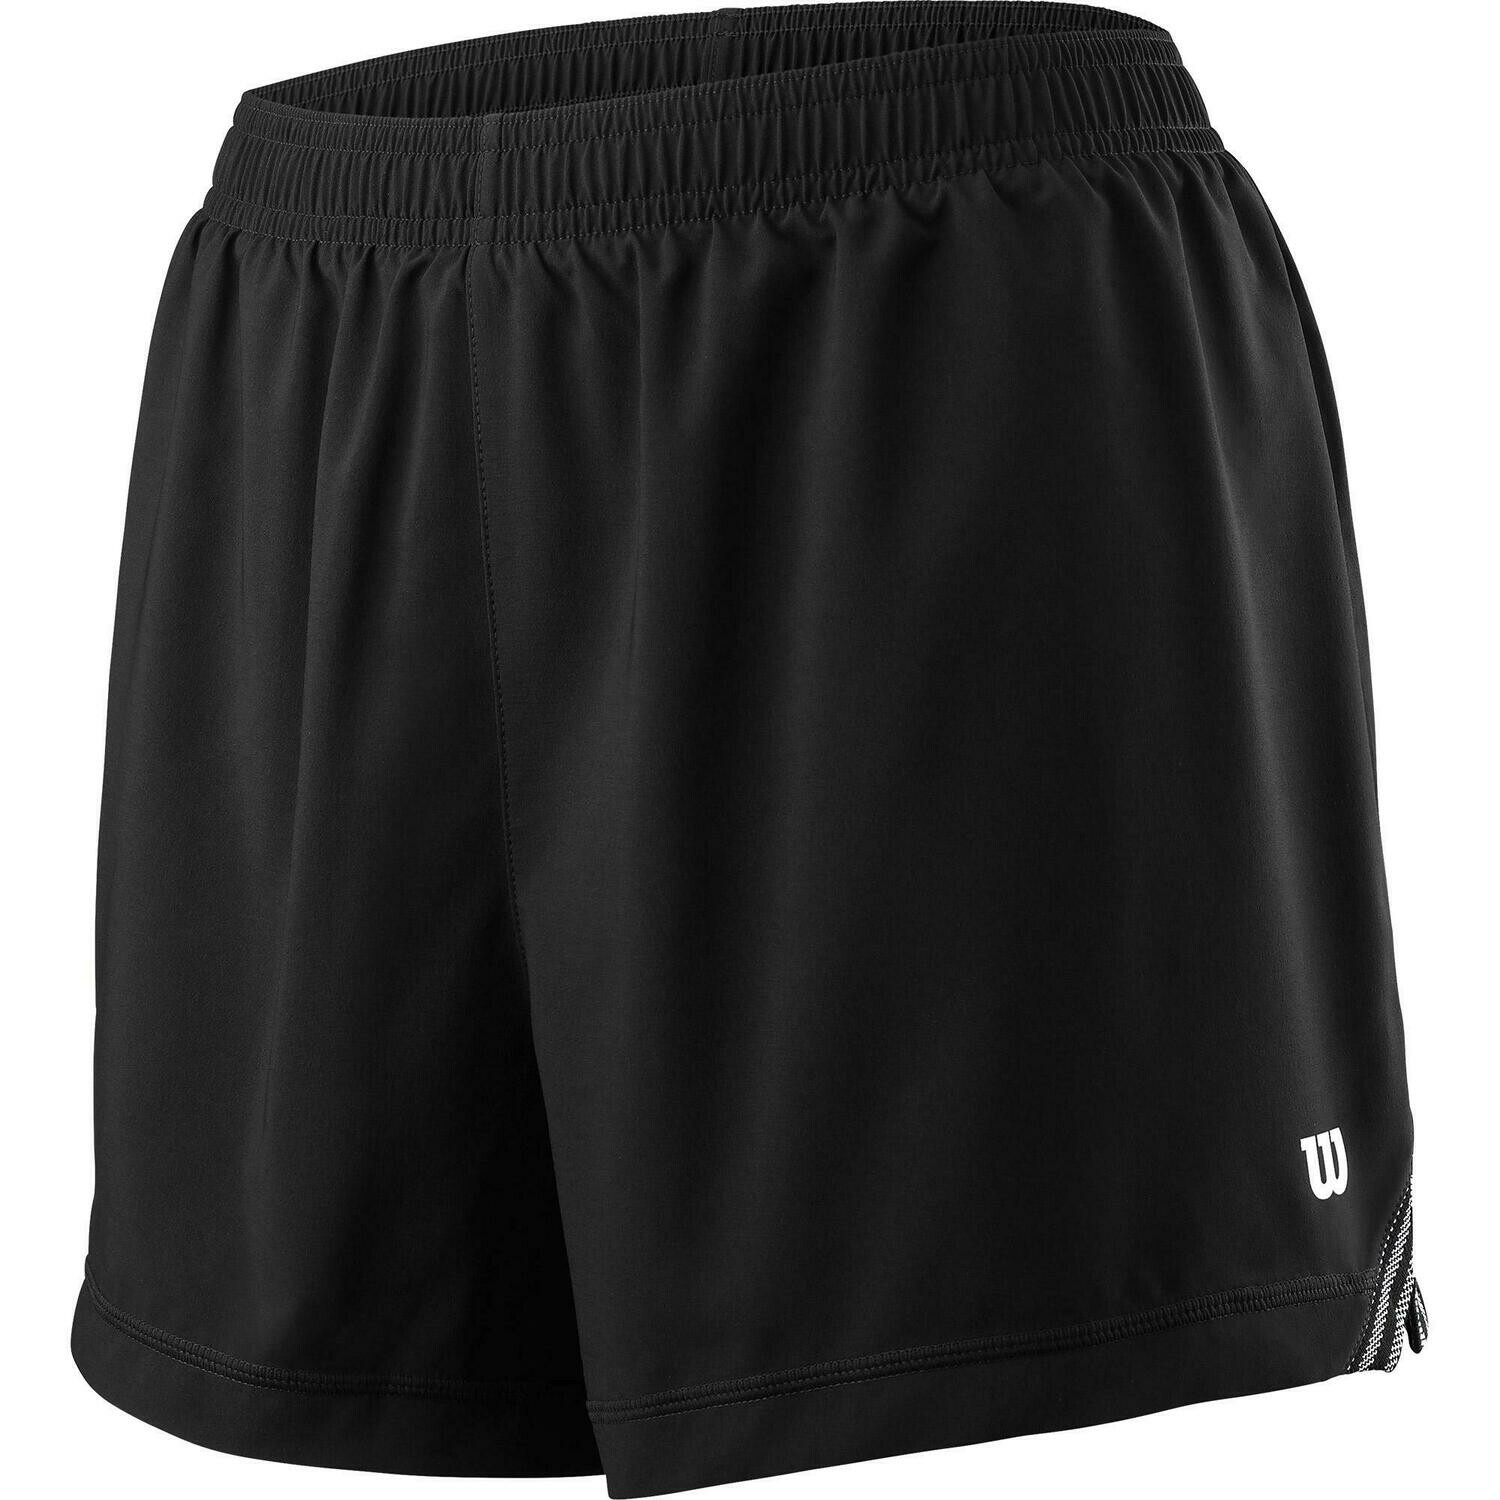 Wilson Ladies Team 3.5 Short - Black